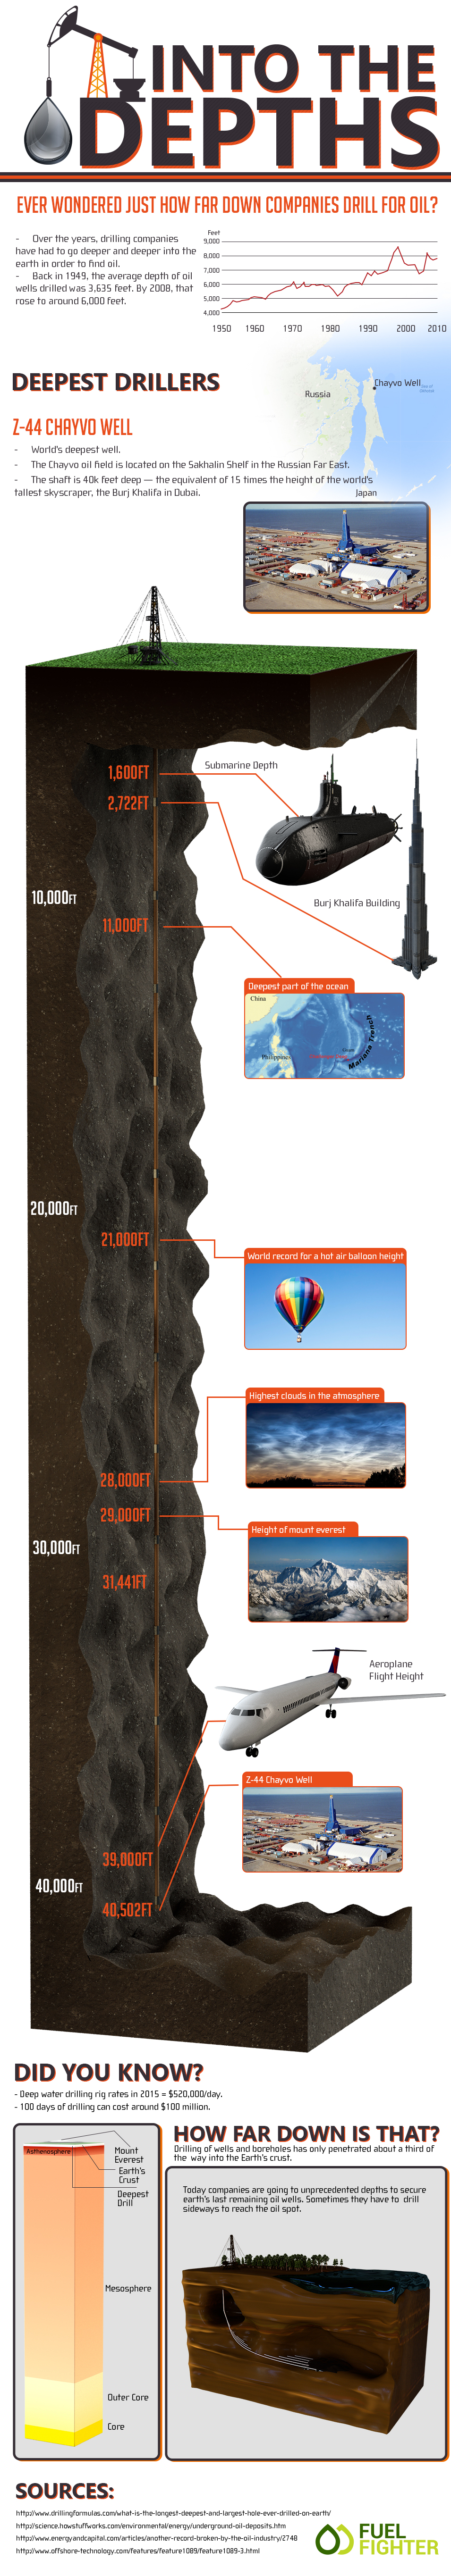 Everything You Need To Know About Oil Excavation - Infographic